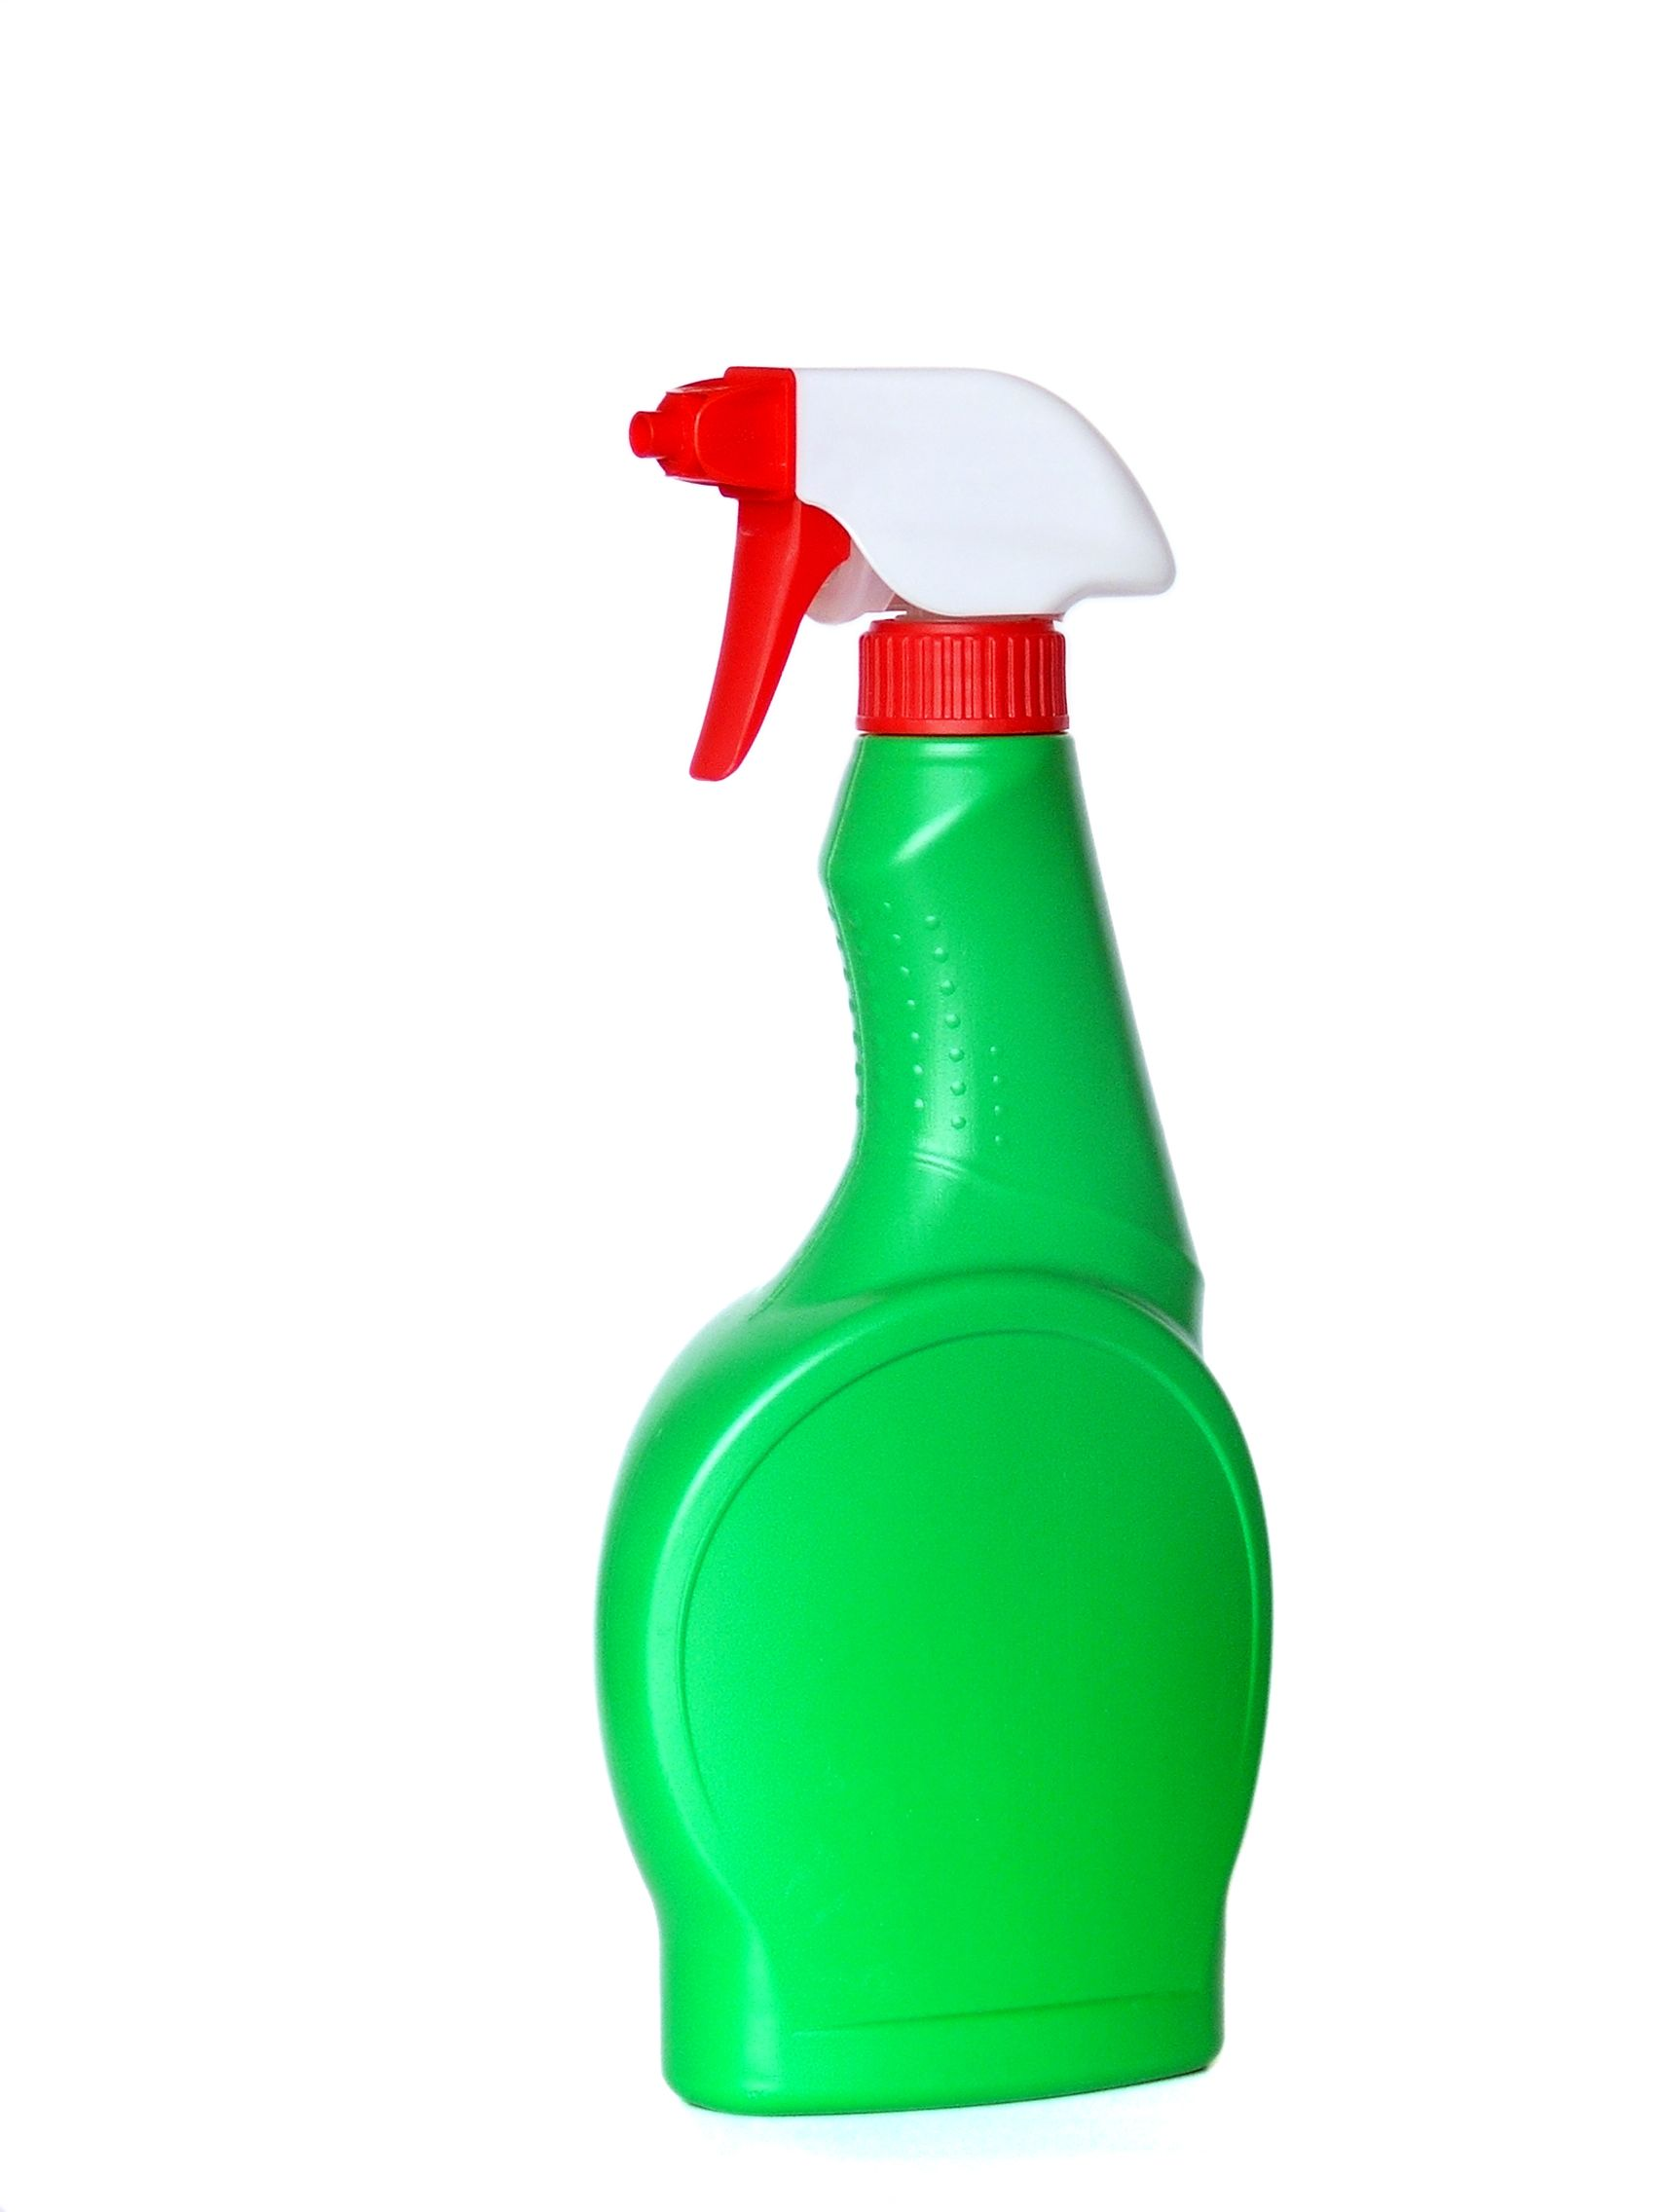 Cleaning Product Spray Bottle Google Search Rocky